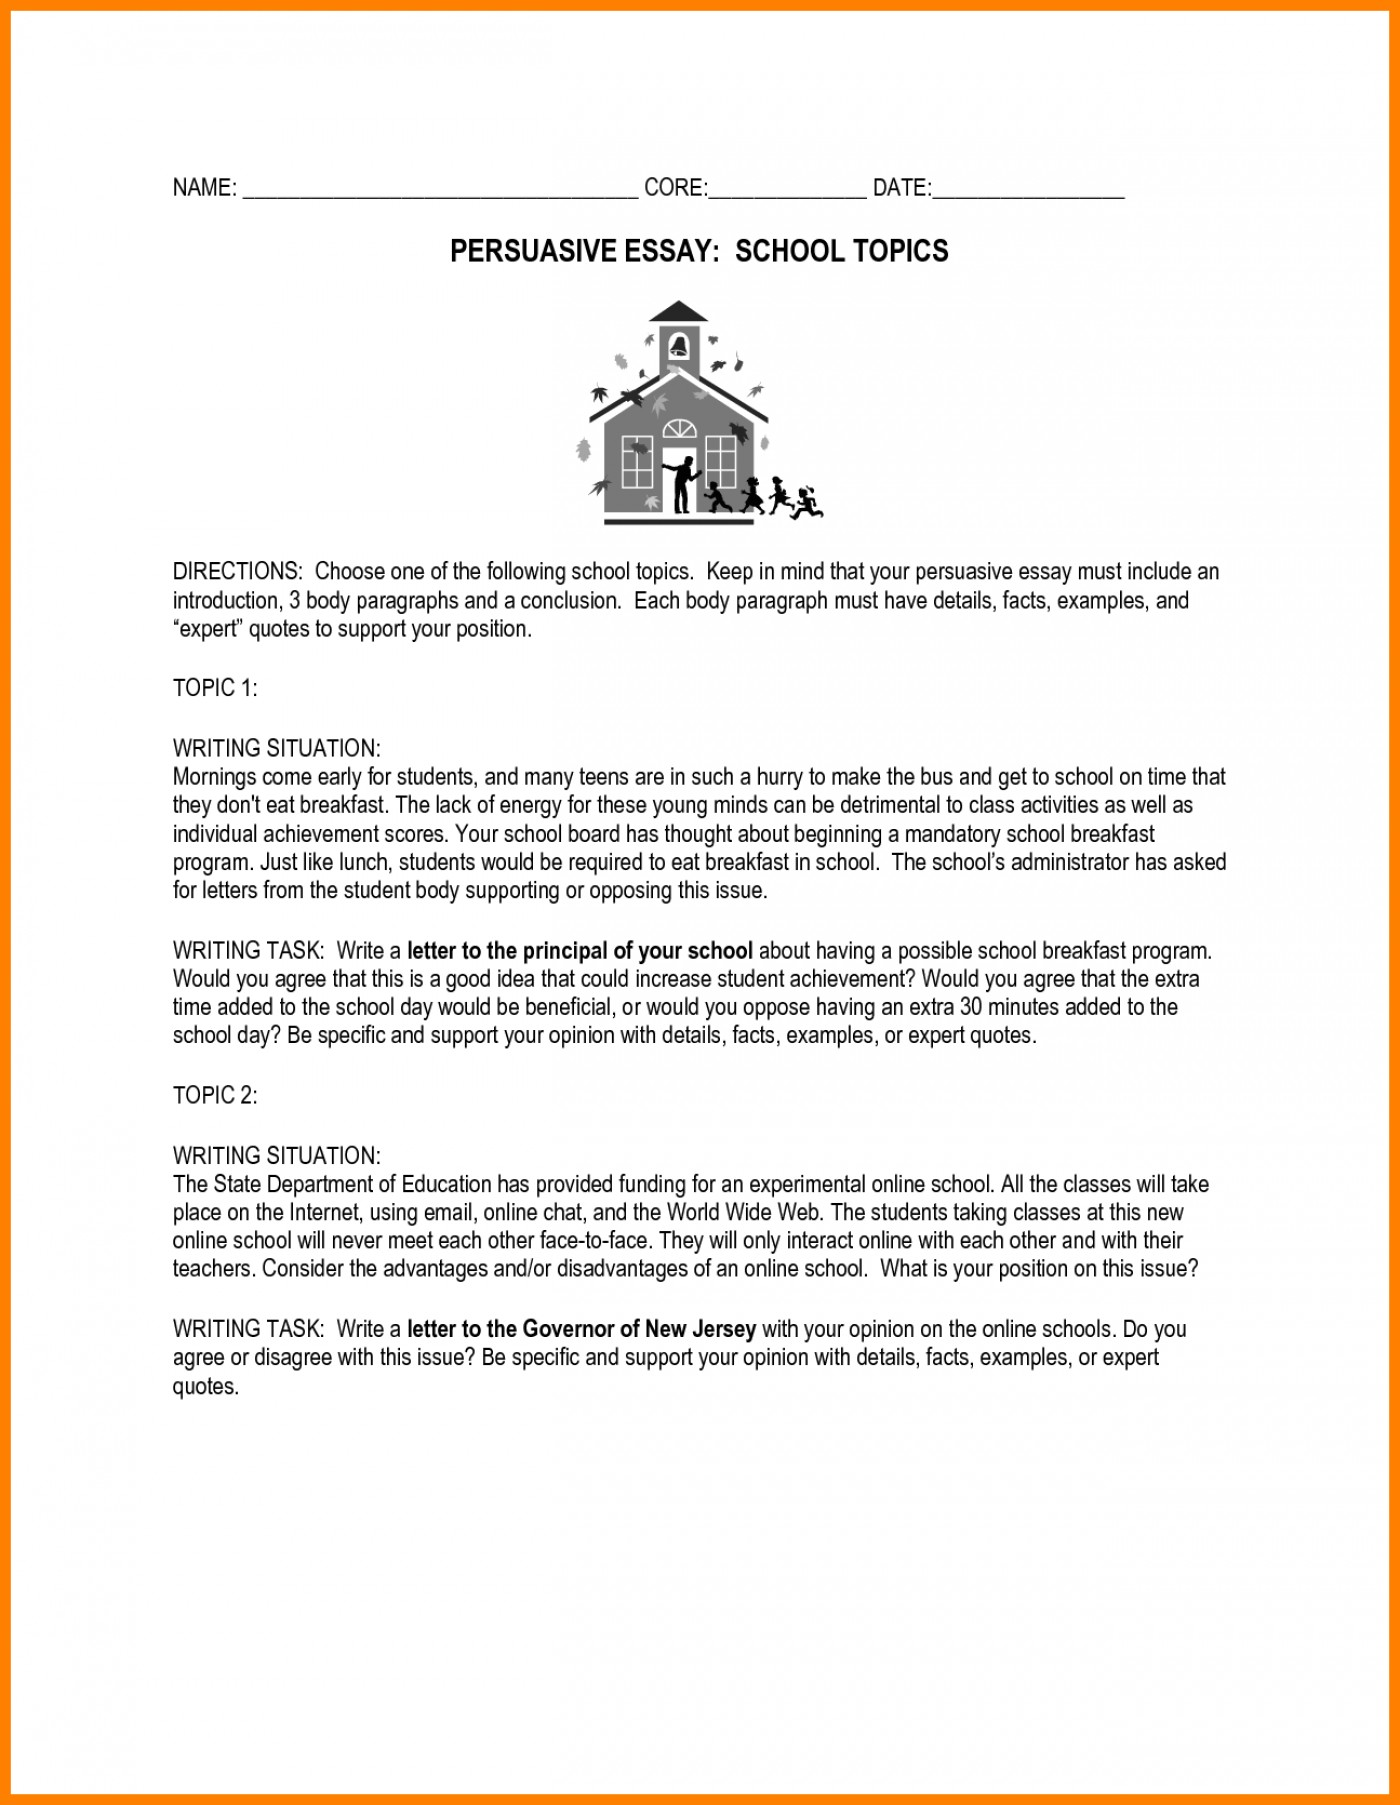 014 Essay Example Essays For Middle School Awesome Collection Of Persuasive Topics High Fabulous Prompts Shocking Informative Writing Leadership Students 1400